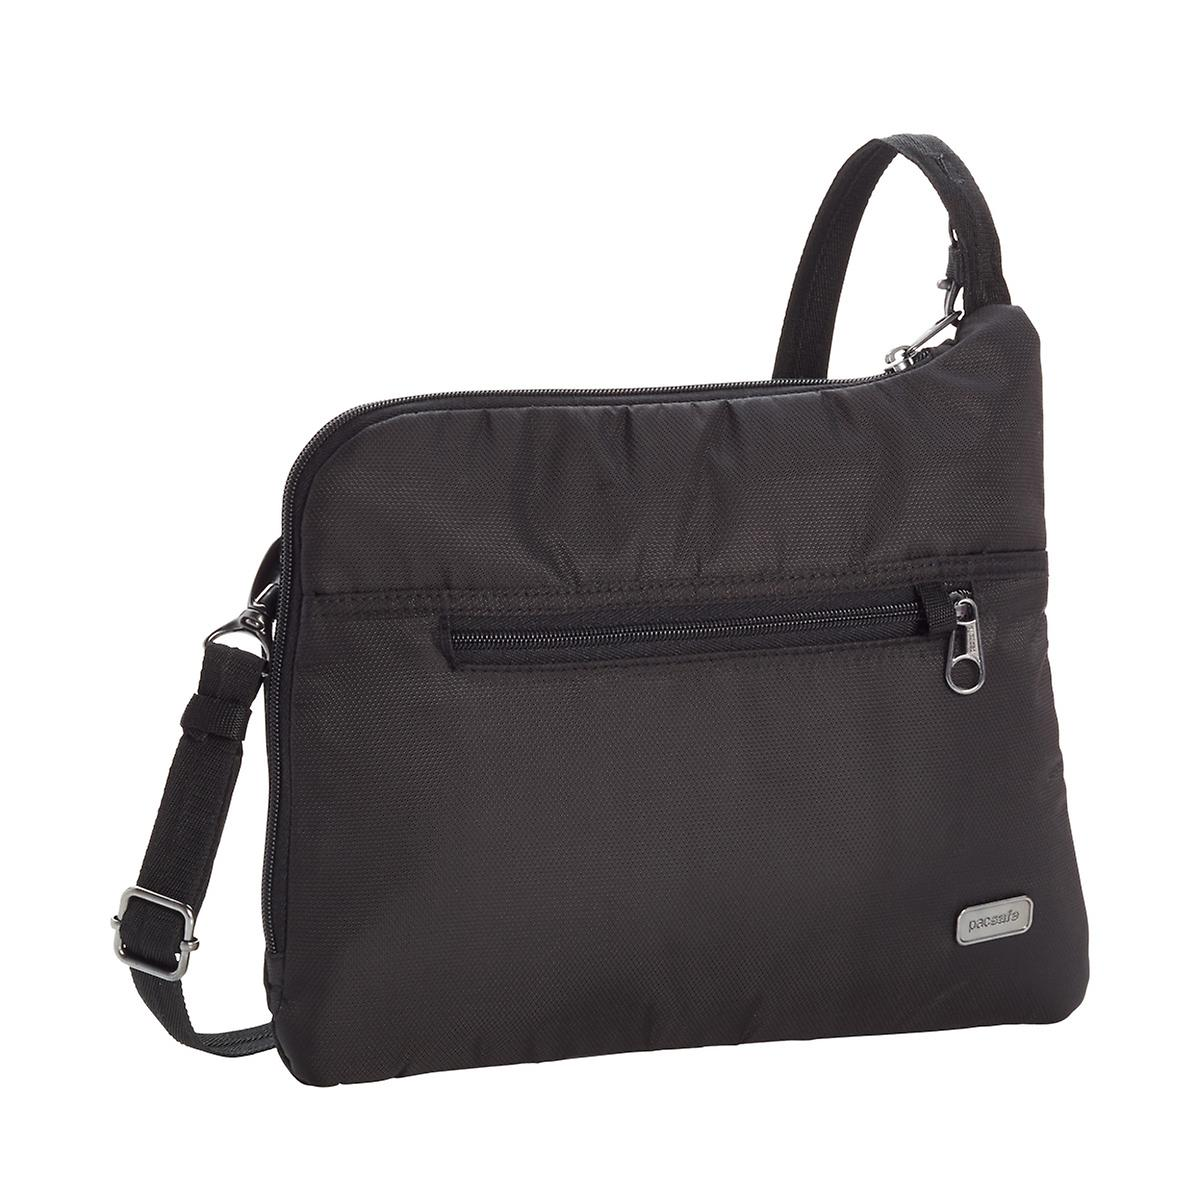 Pacsafe Black Daysafe Slim Crossbody